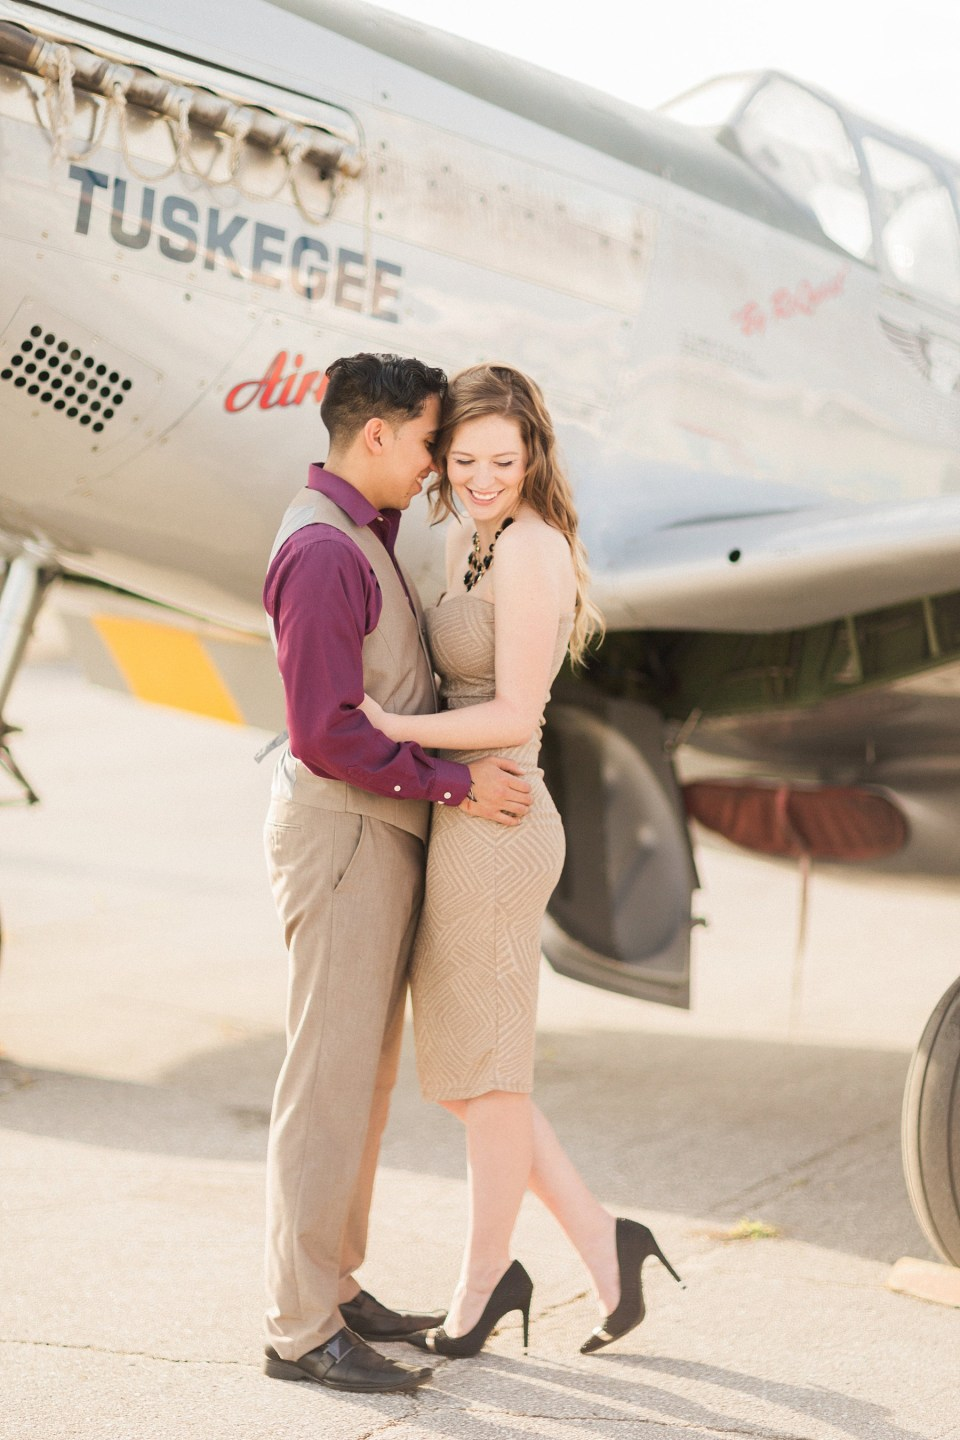 Airplane Anniversary Session | www.bricibene.com | Jacksonville, Florida and Worldwide Wedding Photographer